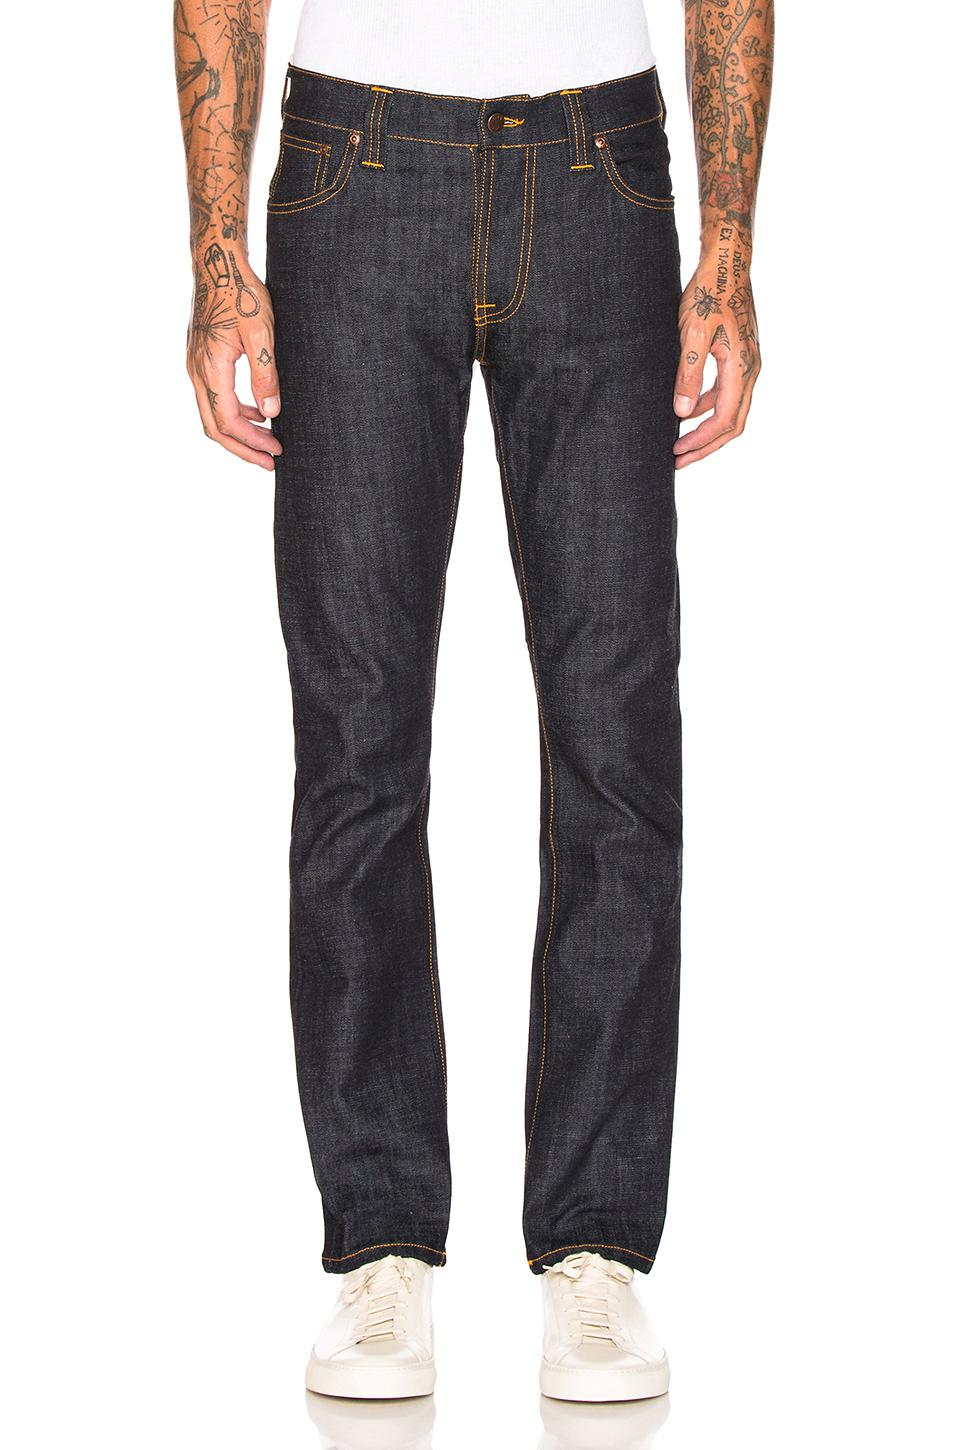 Nudie Jeans Cotton Thin Finn for Men - Save 52%